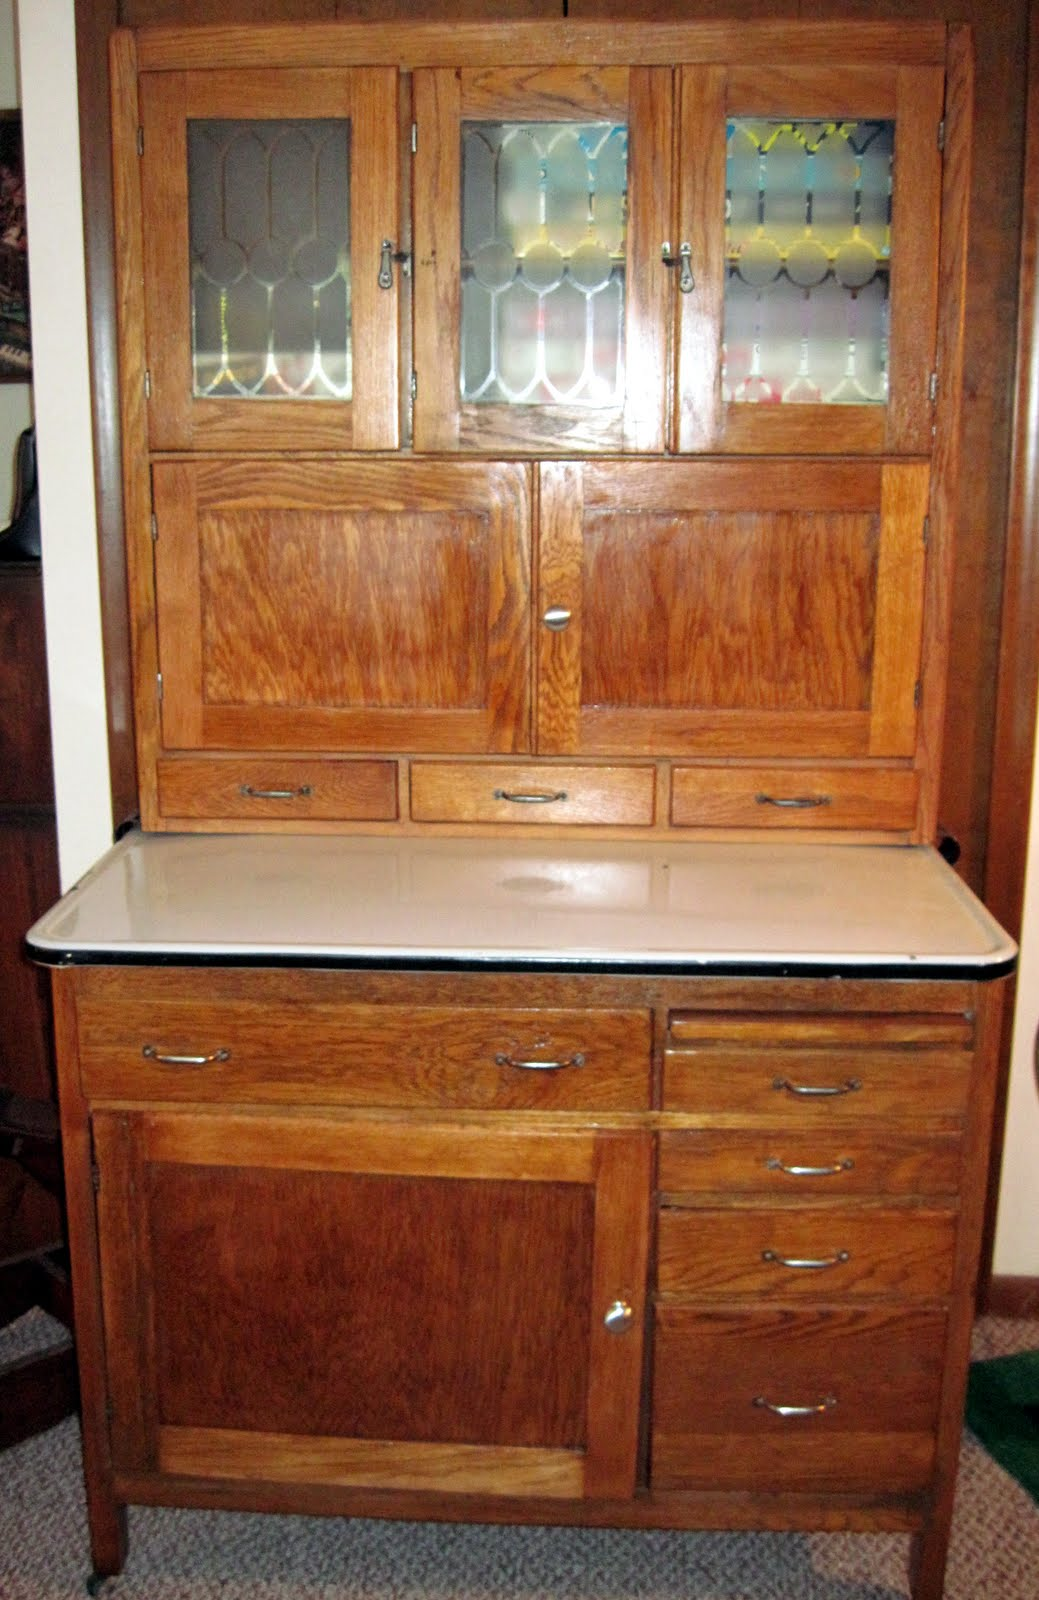 Vintage Kitchen Furniture For Sale